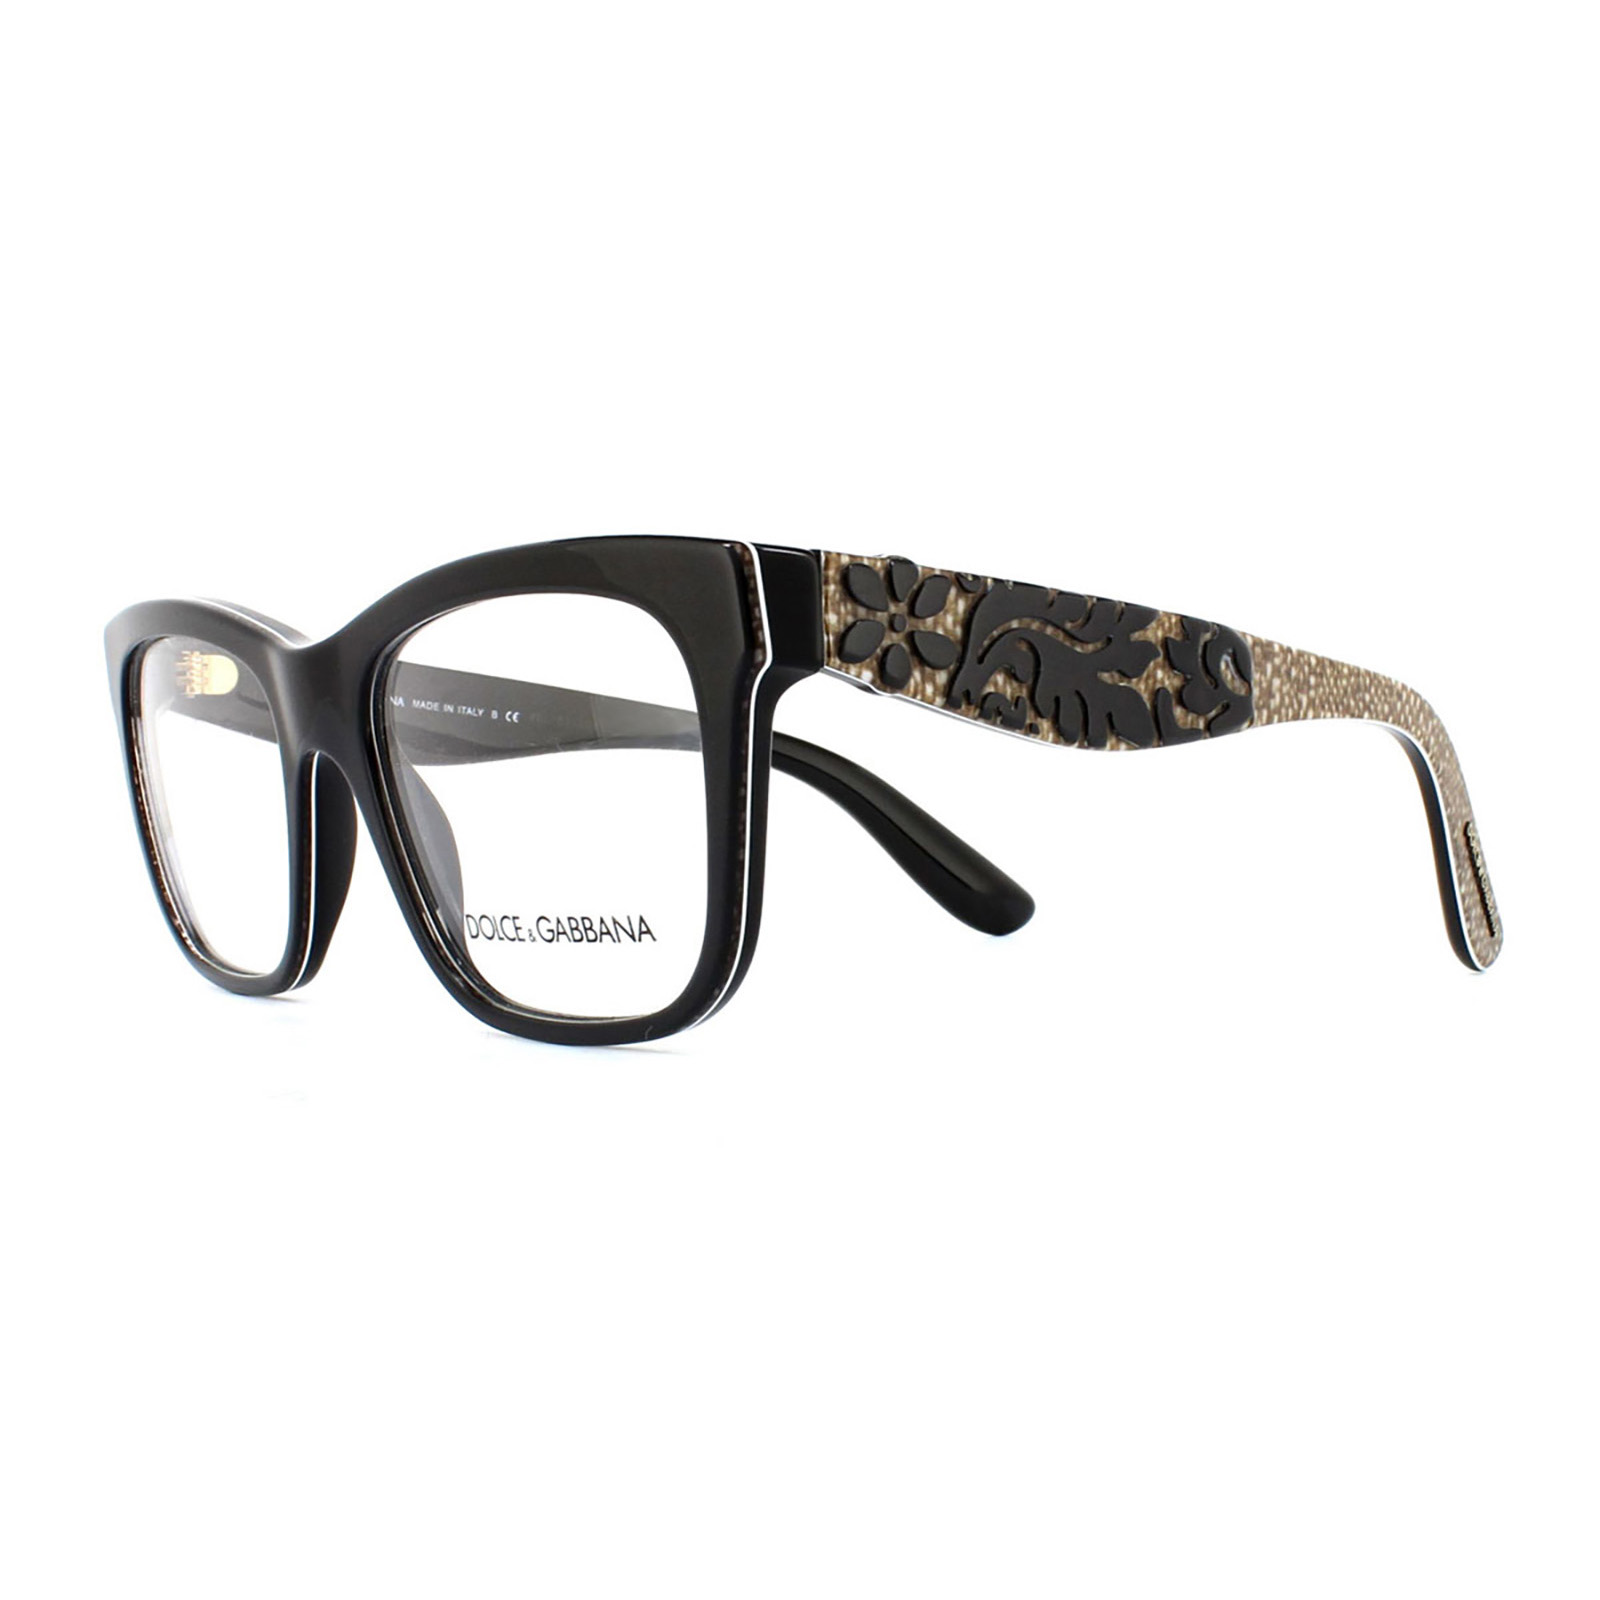 Dolce and Gabbana Glasses Frames 3239 2998 Top Black Texture Tissue ...